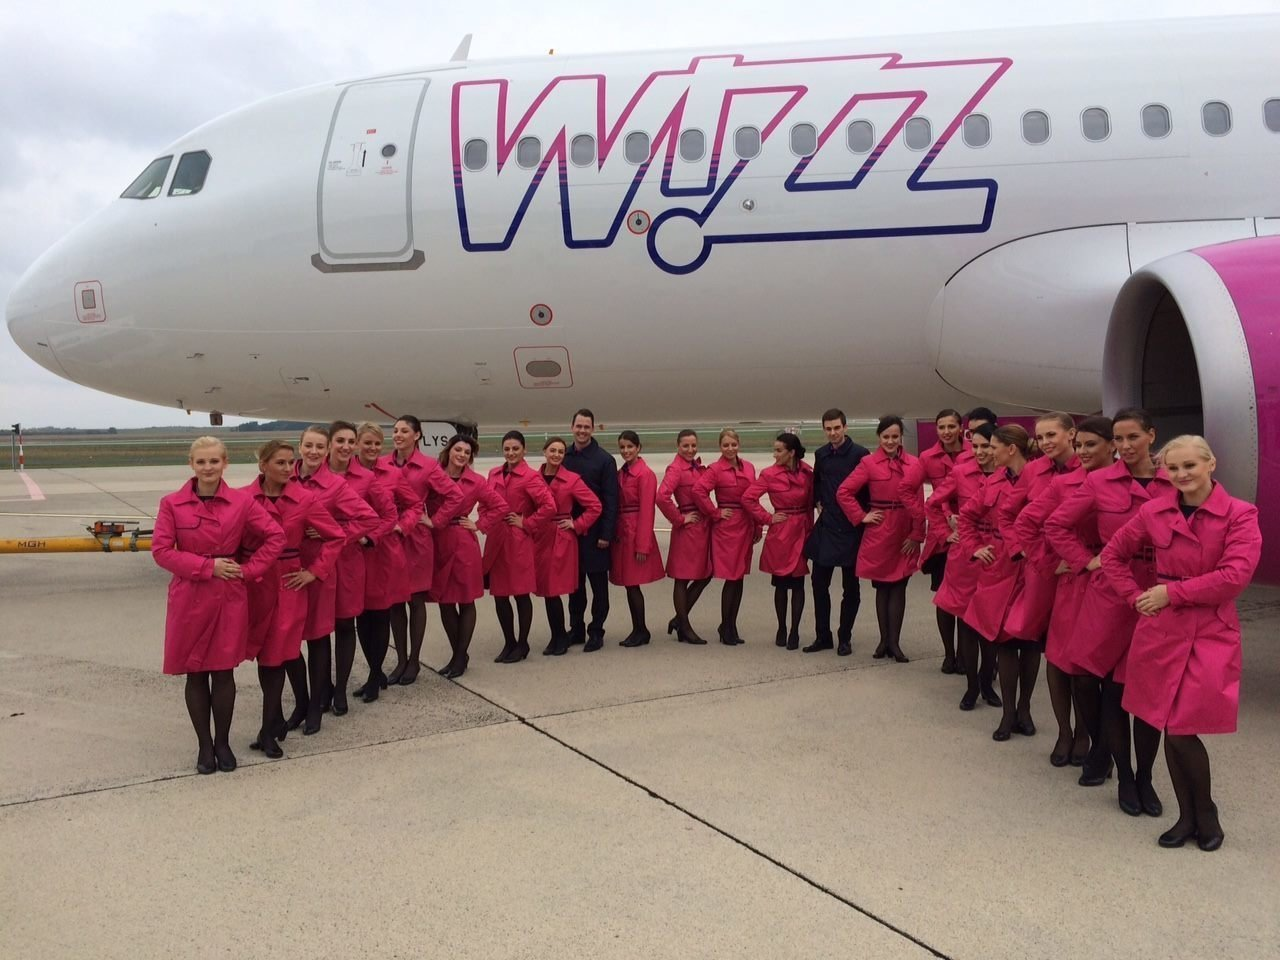 Hungarian Wizz Air was least punctual airline flying from UK last year